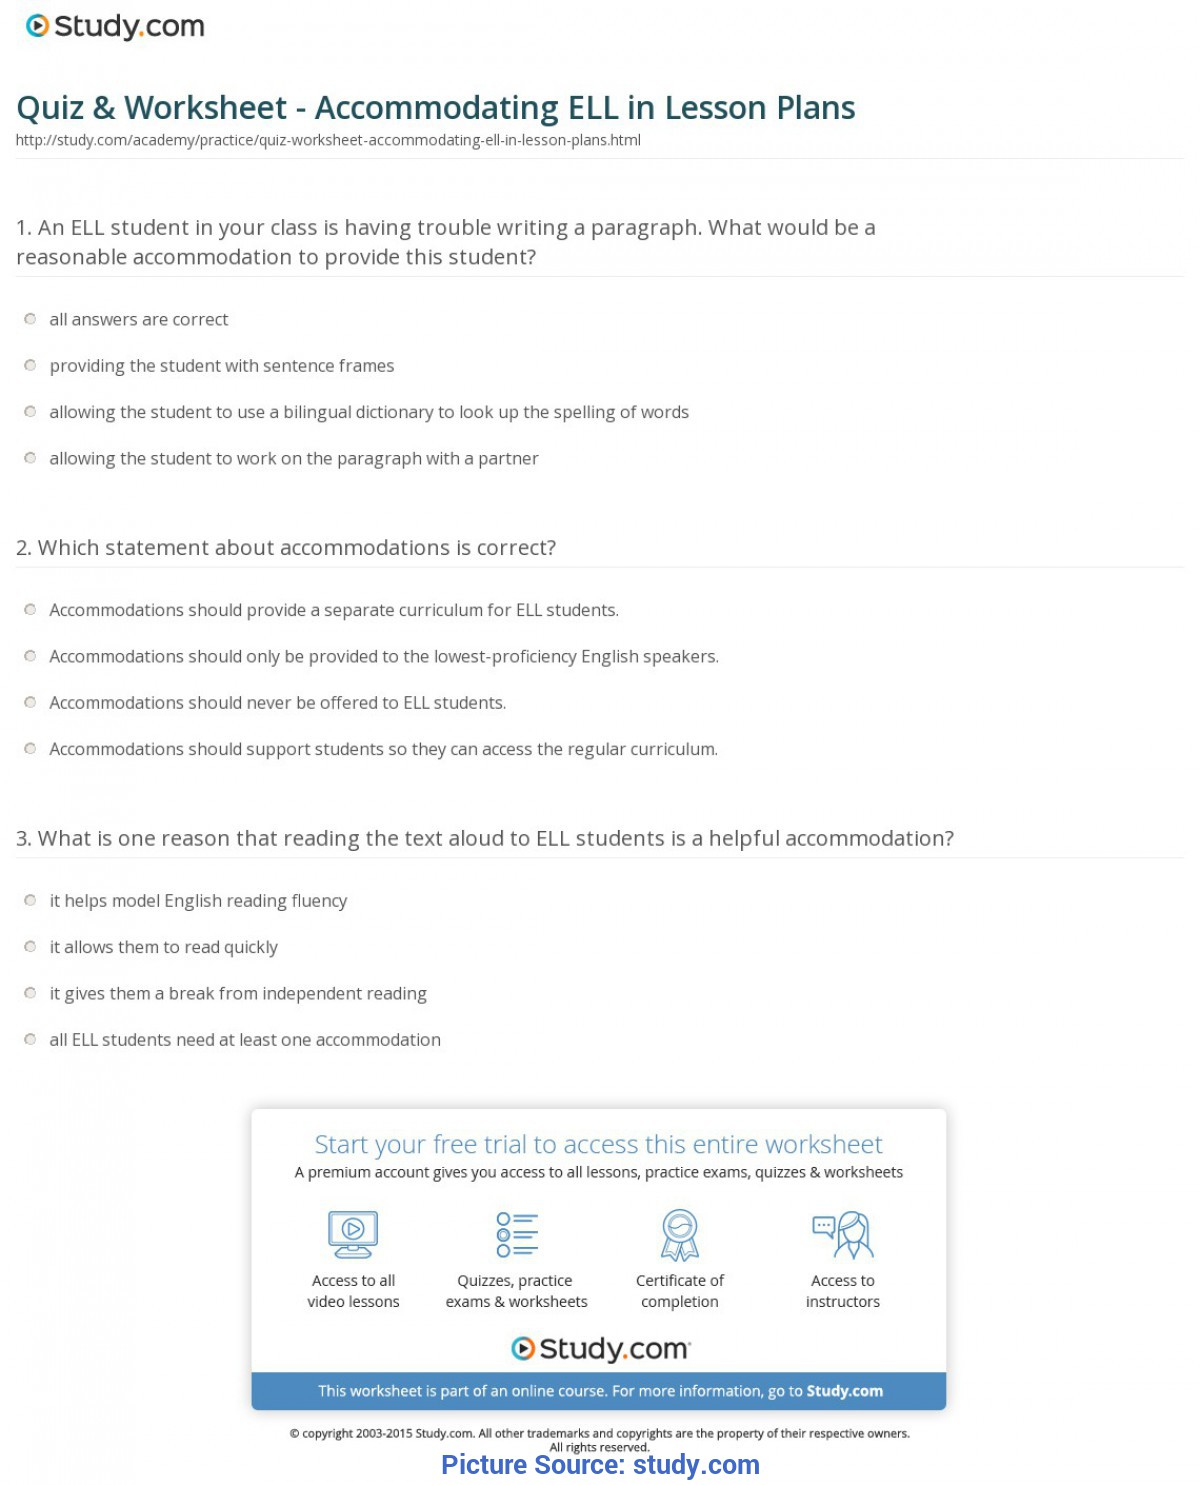 Simple How To Make A Lesson Plan For Teaching English Quiz & Worksheet - Accommodating Ell In Lesson Plans | Study